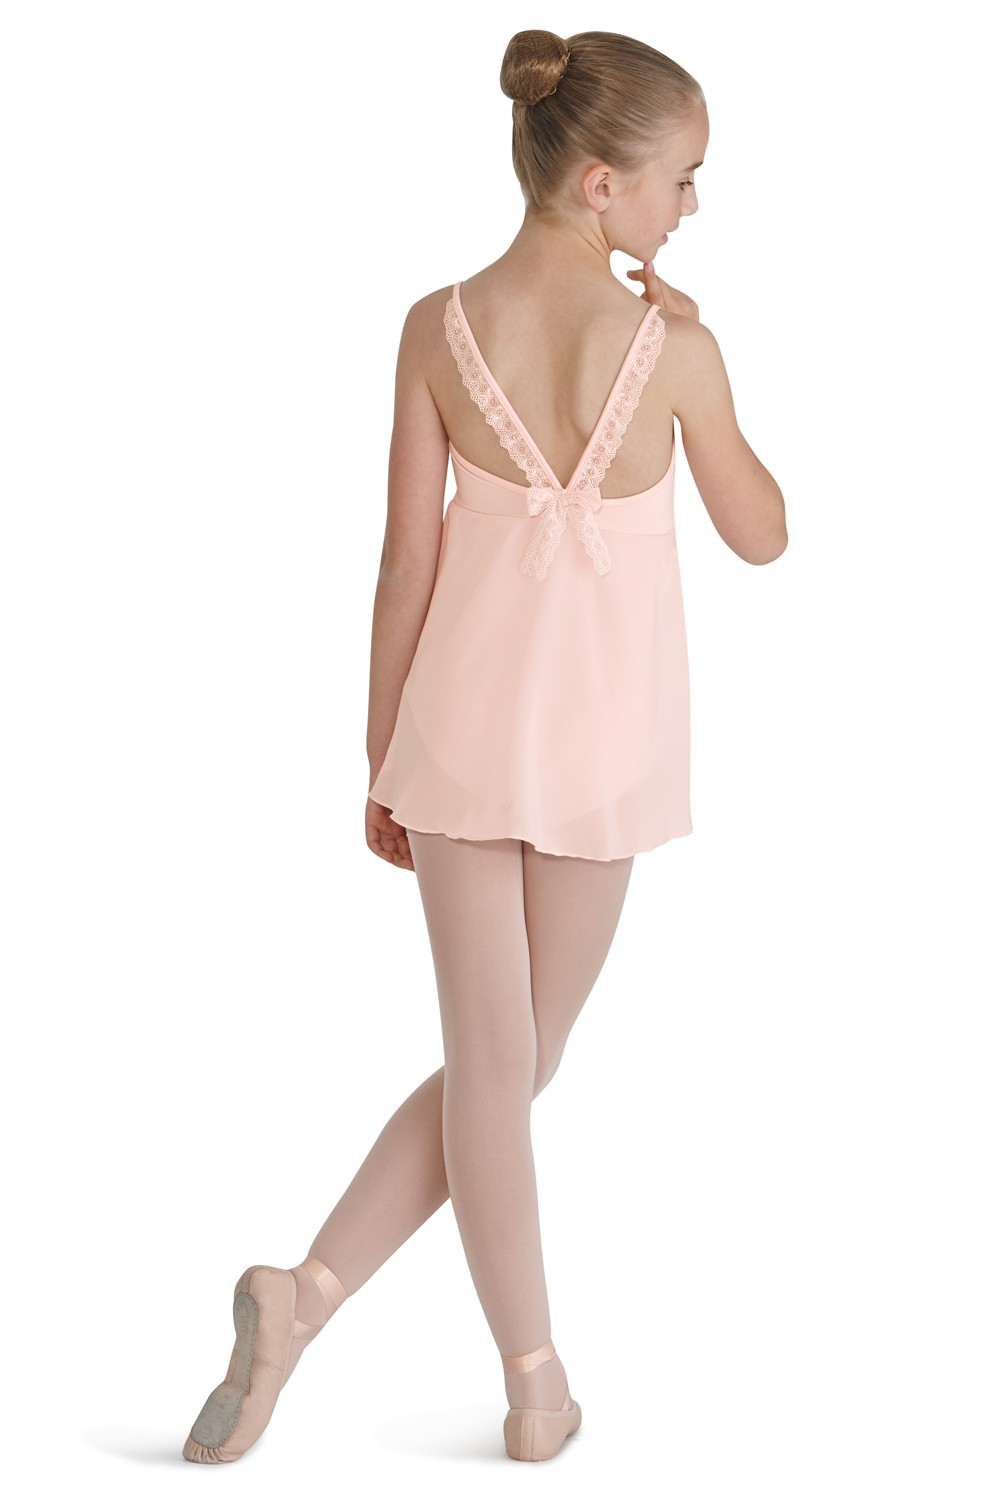 Bow Back Skirted Camisole Children's Dance Leotards